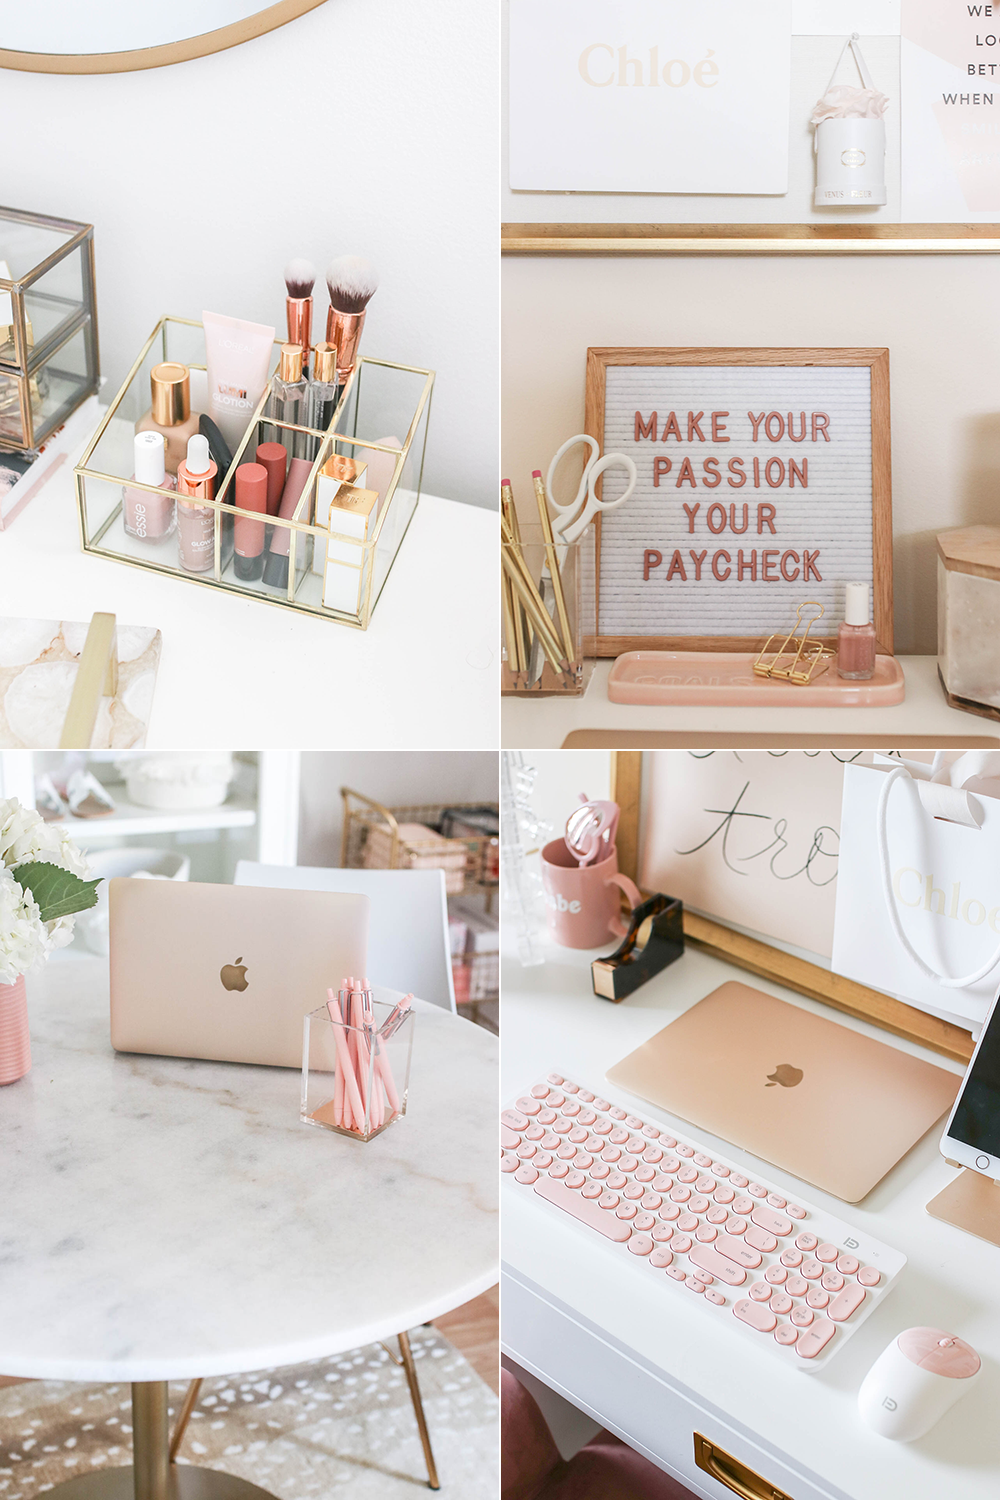 dress - Affordable chic office accessories video